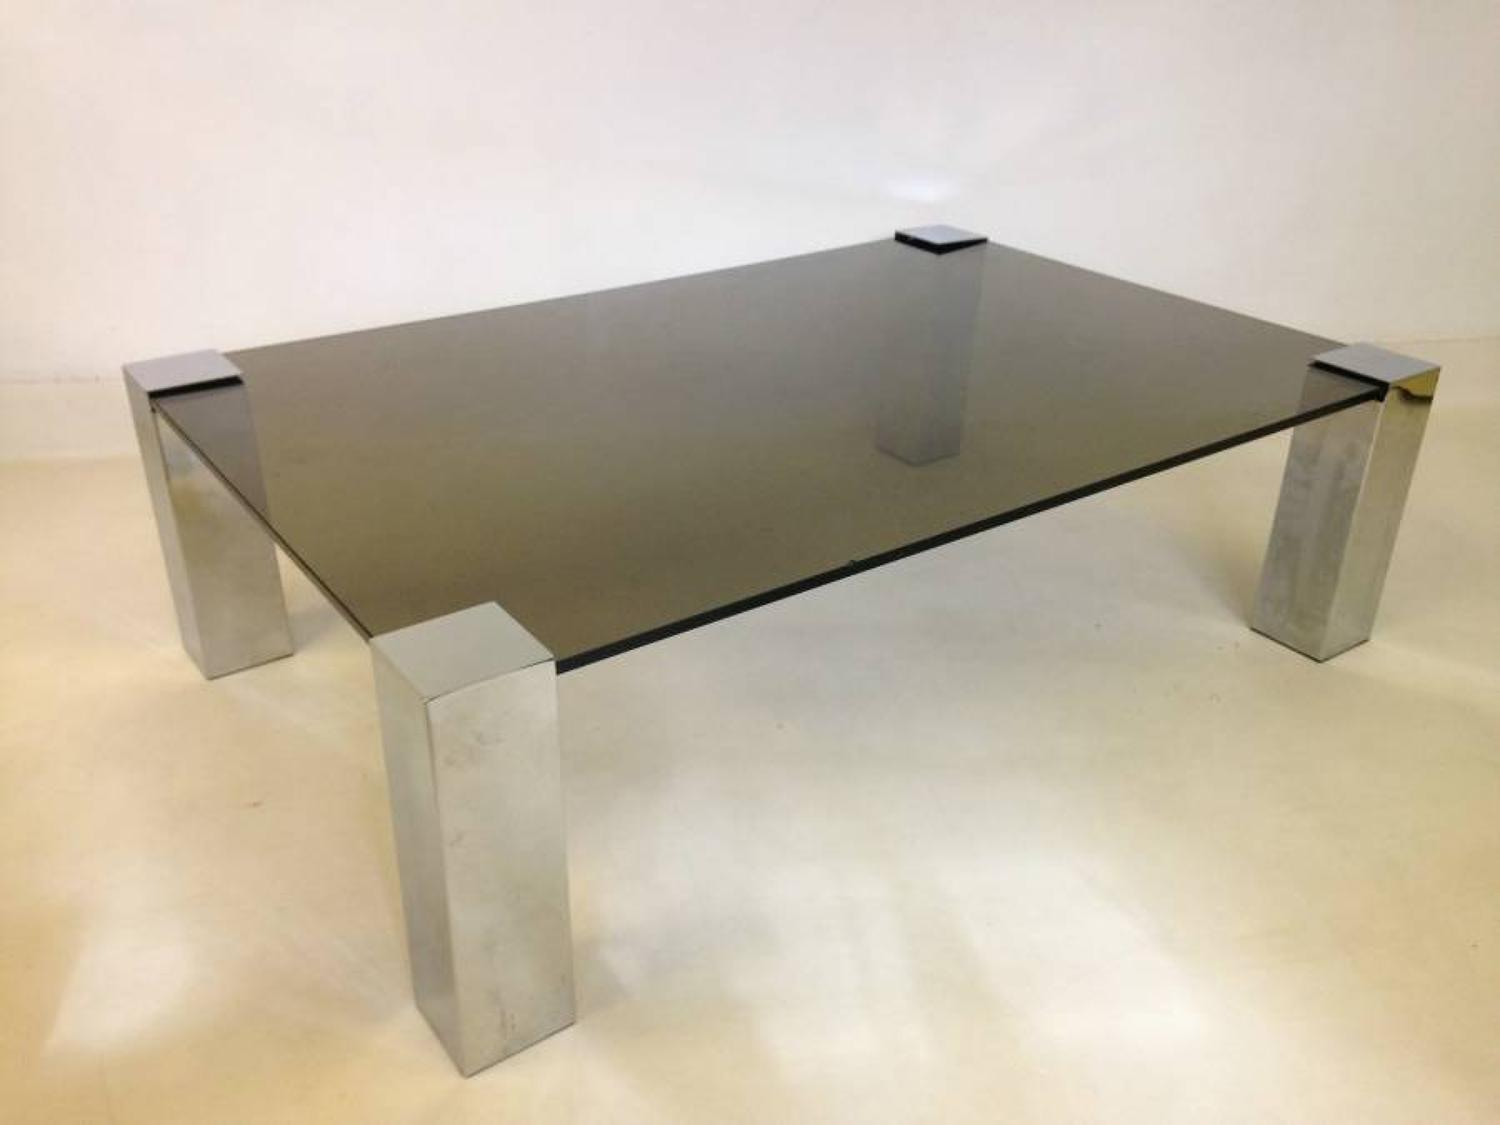 1970s chrome and glass table by Cidue